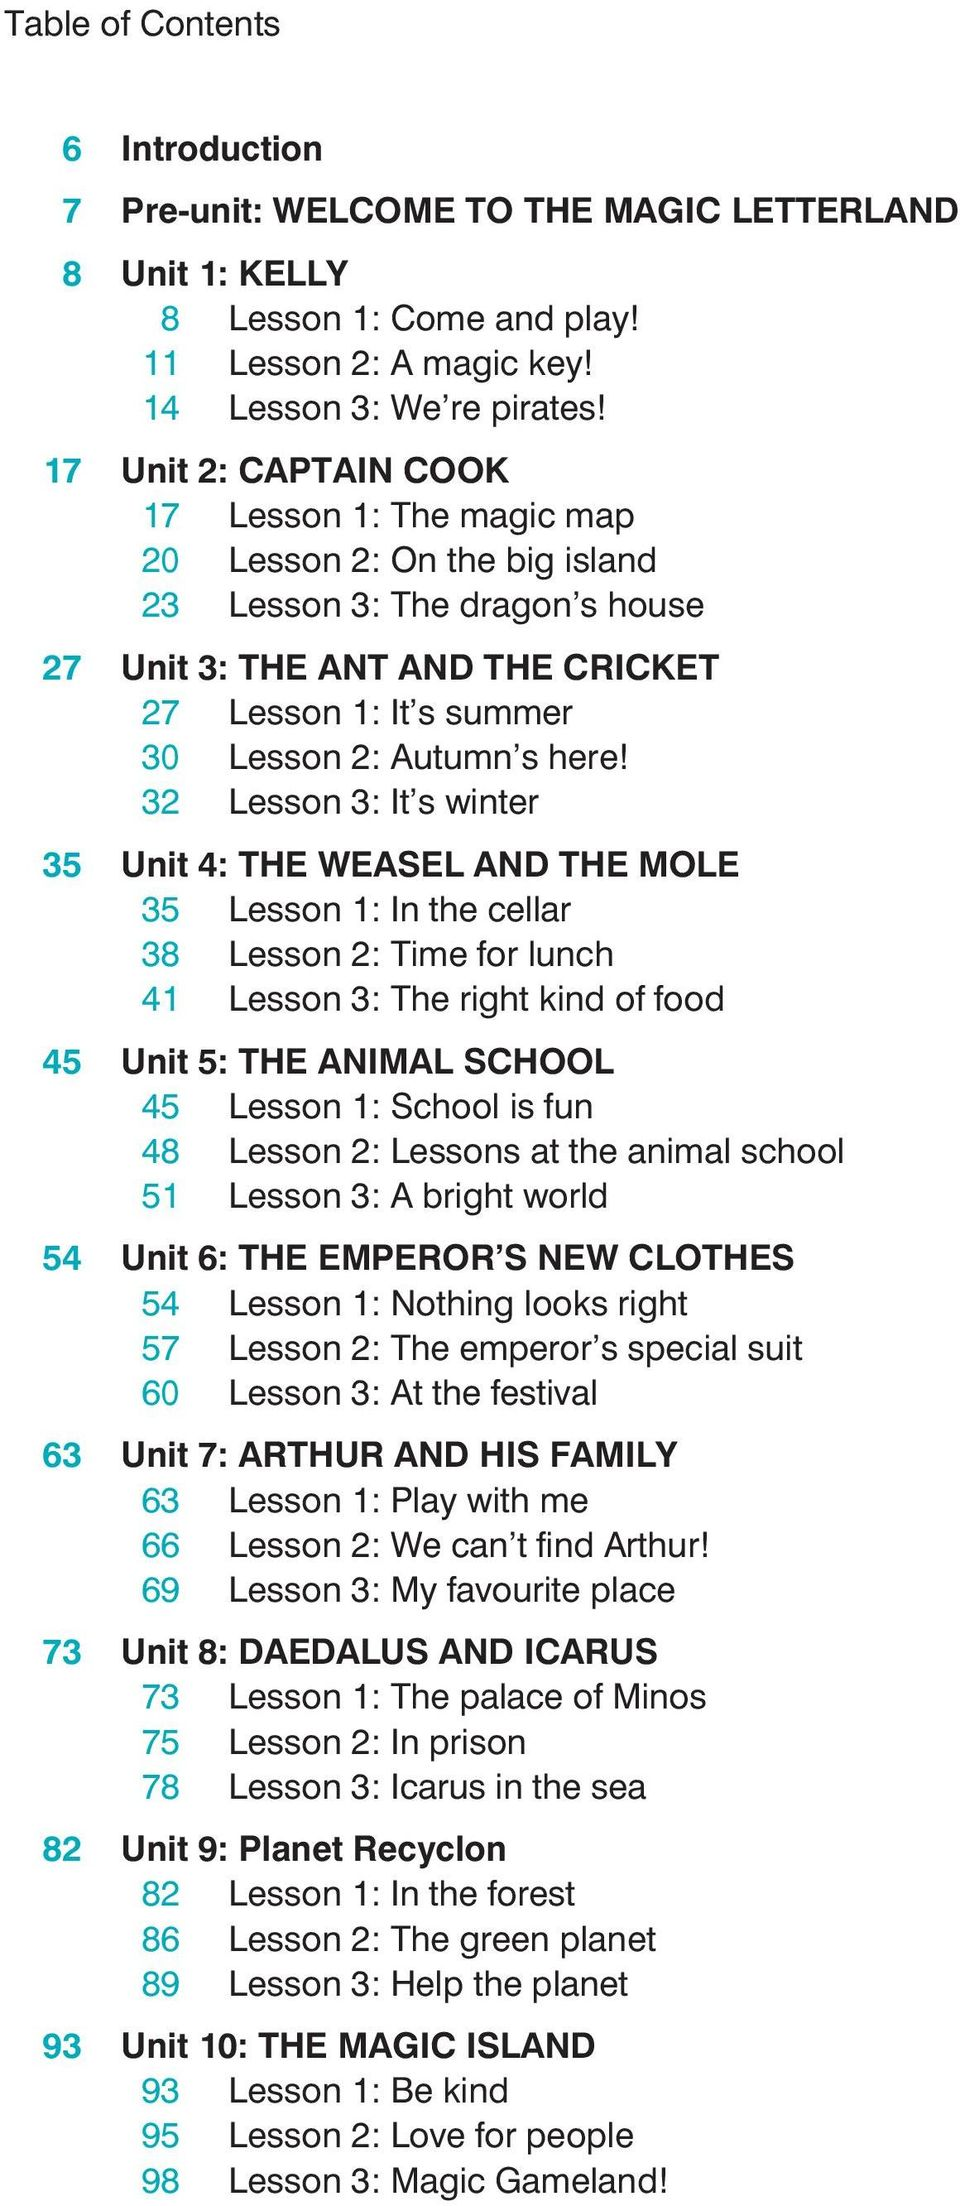 here! 32 Lesson 3: It's winter 35 Unit 4: THE WEASEL AND THE MOLE 35 Lesson 1: In the cellar 38 Lesson 2: Time for lunch 41 Lesson 3: The right kind of food 45 Unit 5: THE ANIMAL SCHOOL 45 Lesson 1: